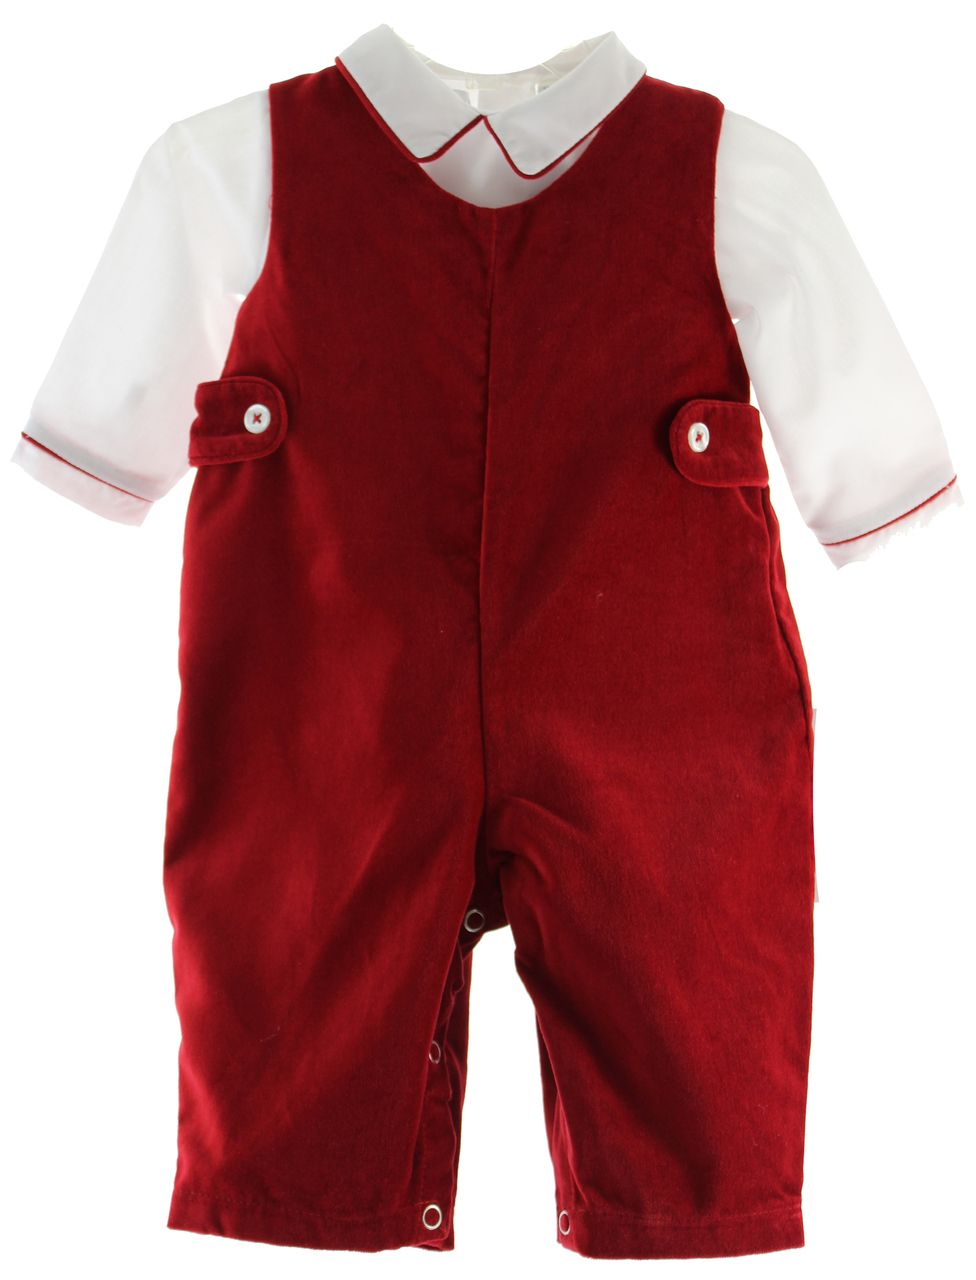 f8a5a99b3 Hiccups Childrens Boutique - Infant Boys Red Velvet Christmas Outfit  Carriage Boutique, $50.00…